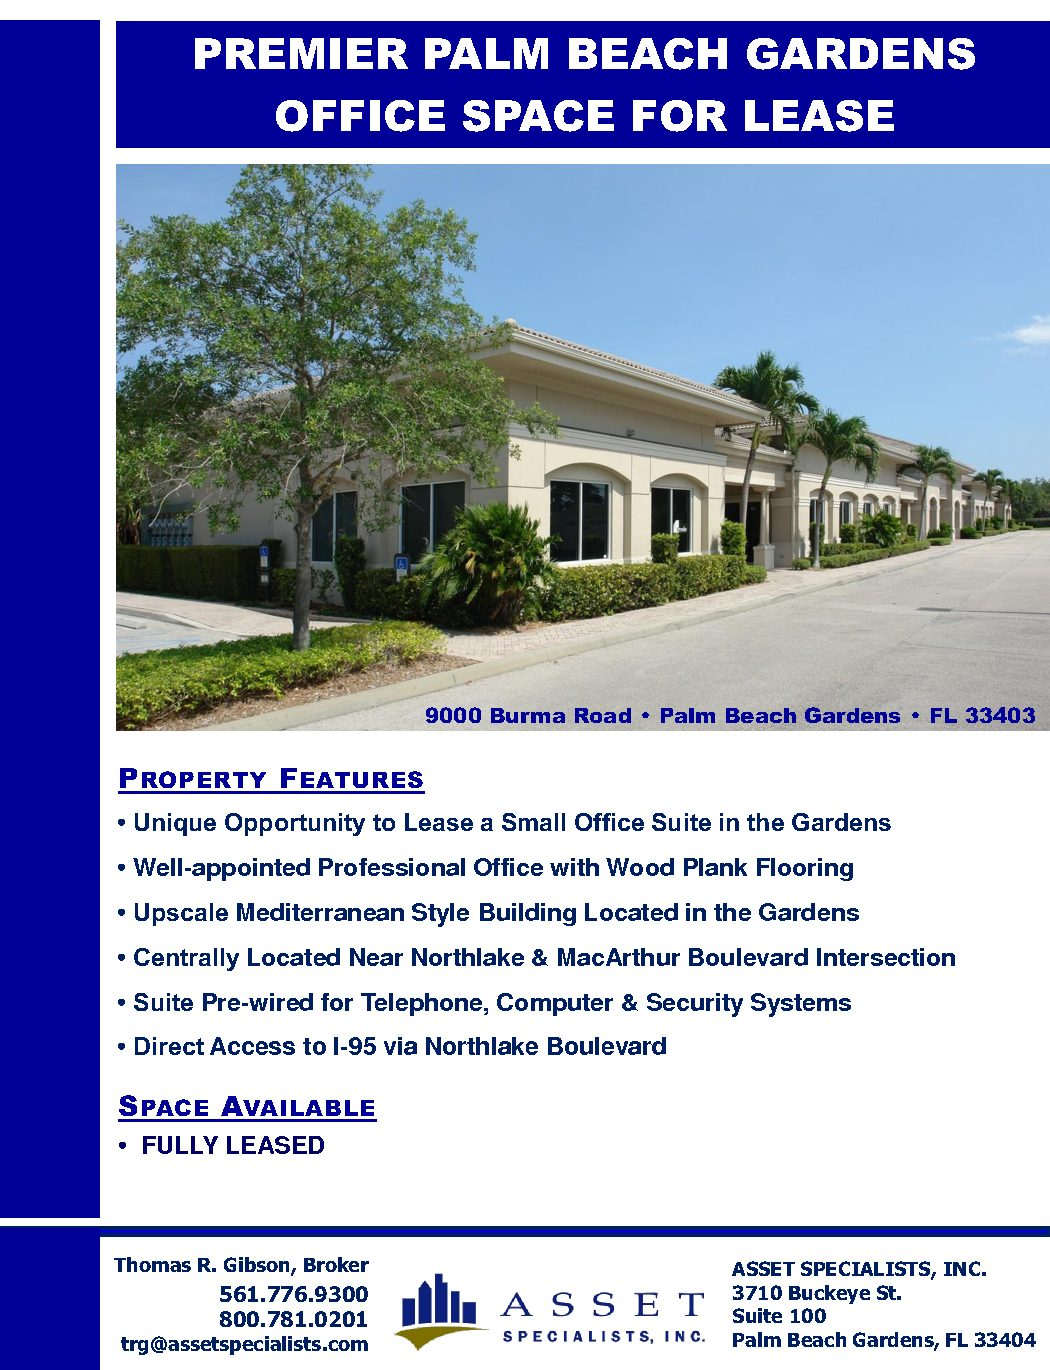 Burma Rd FULLY LEASED brochure – Asset Specialists, Inc